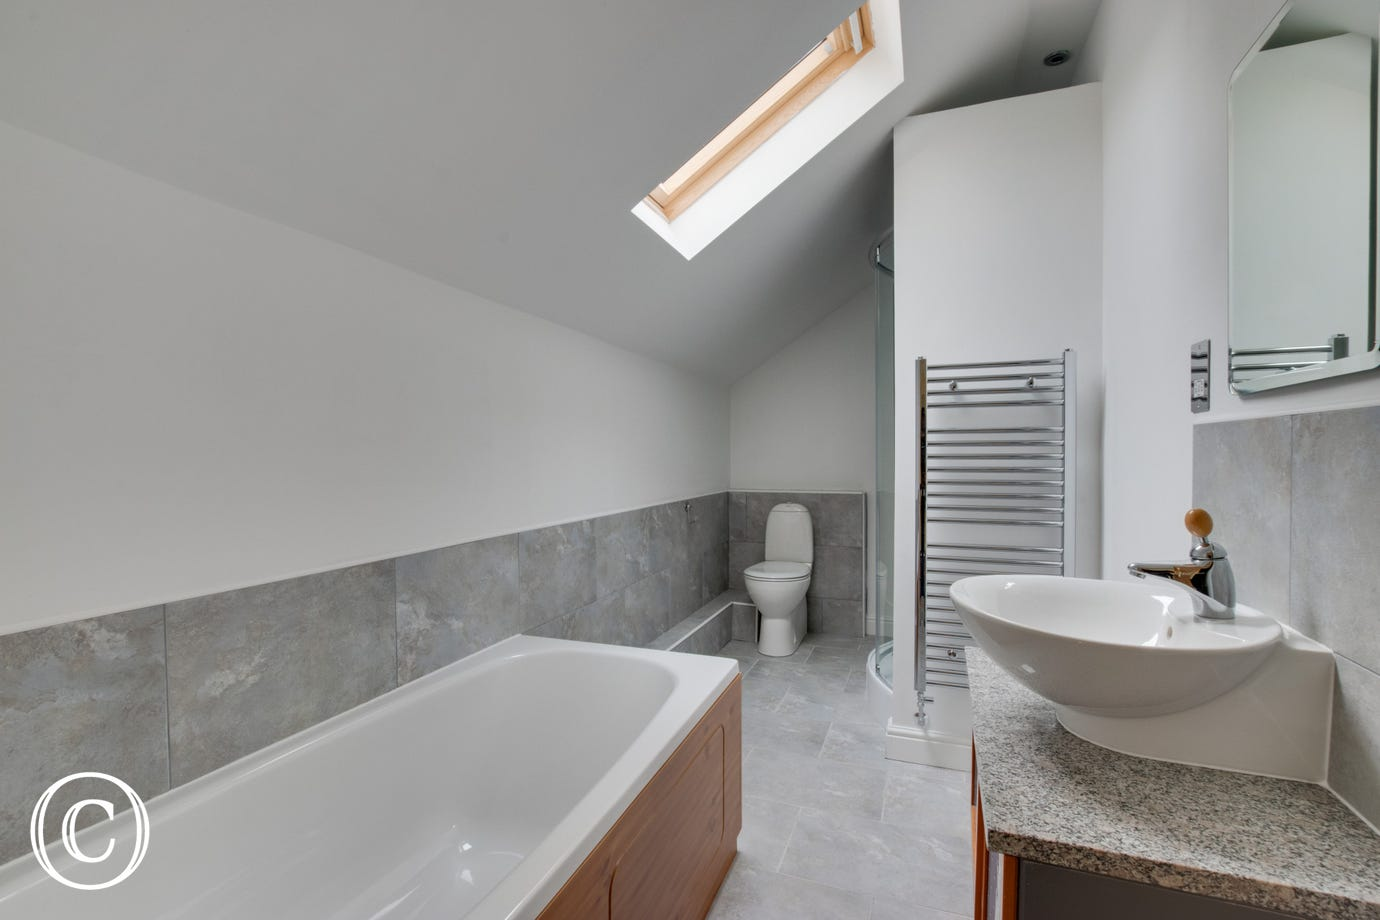 Bathroom includes bath and shower unit